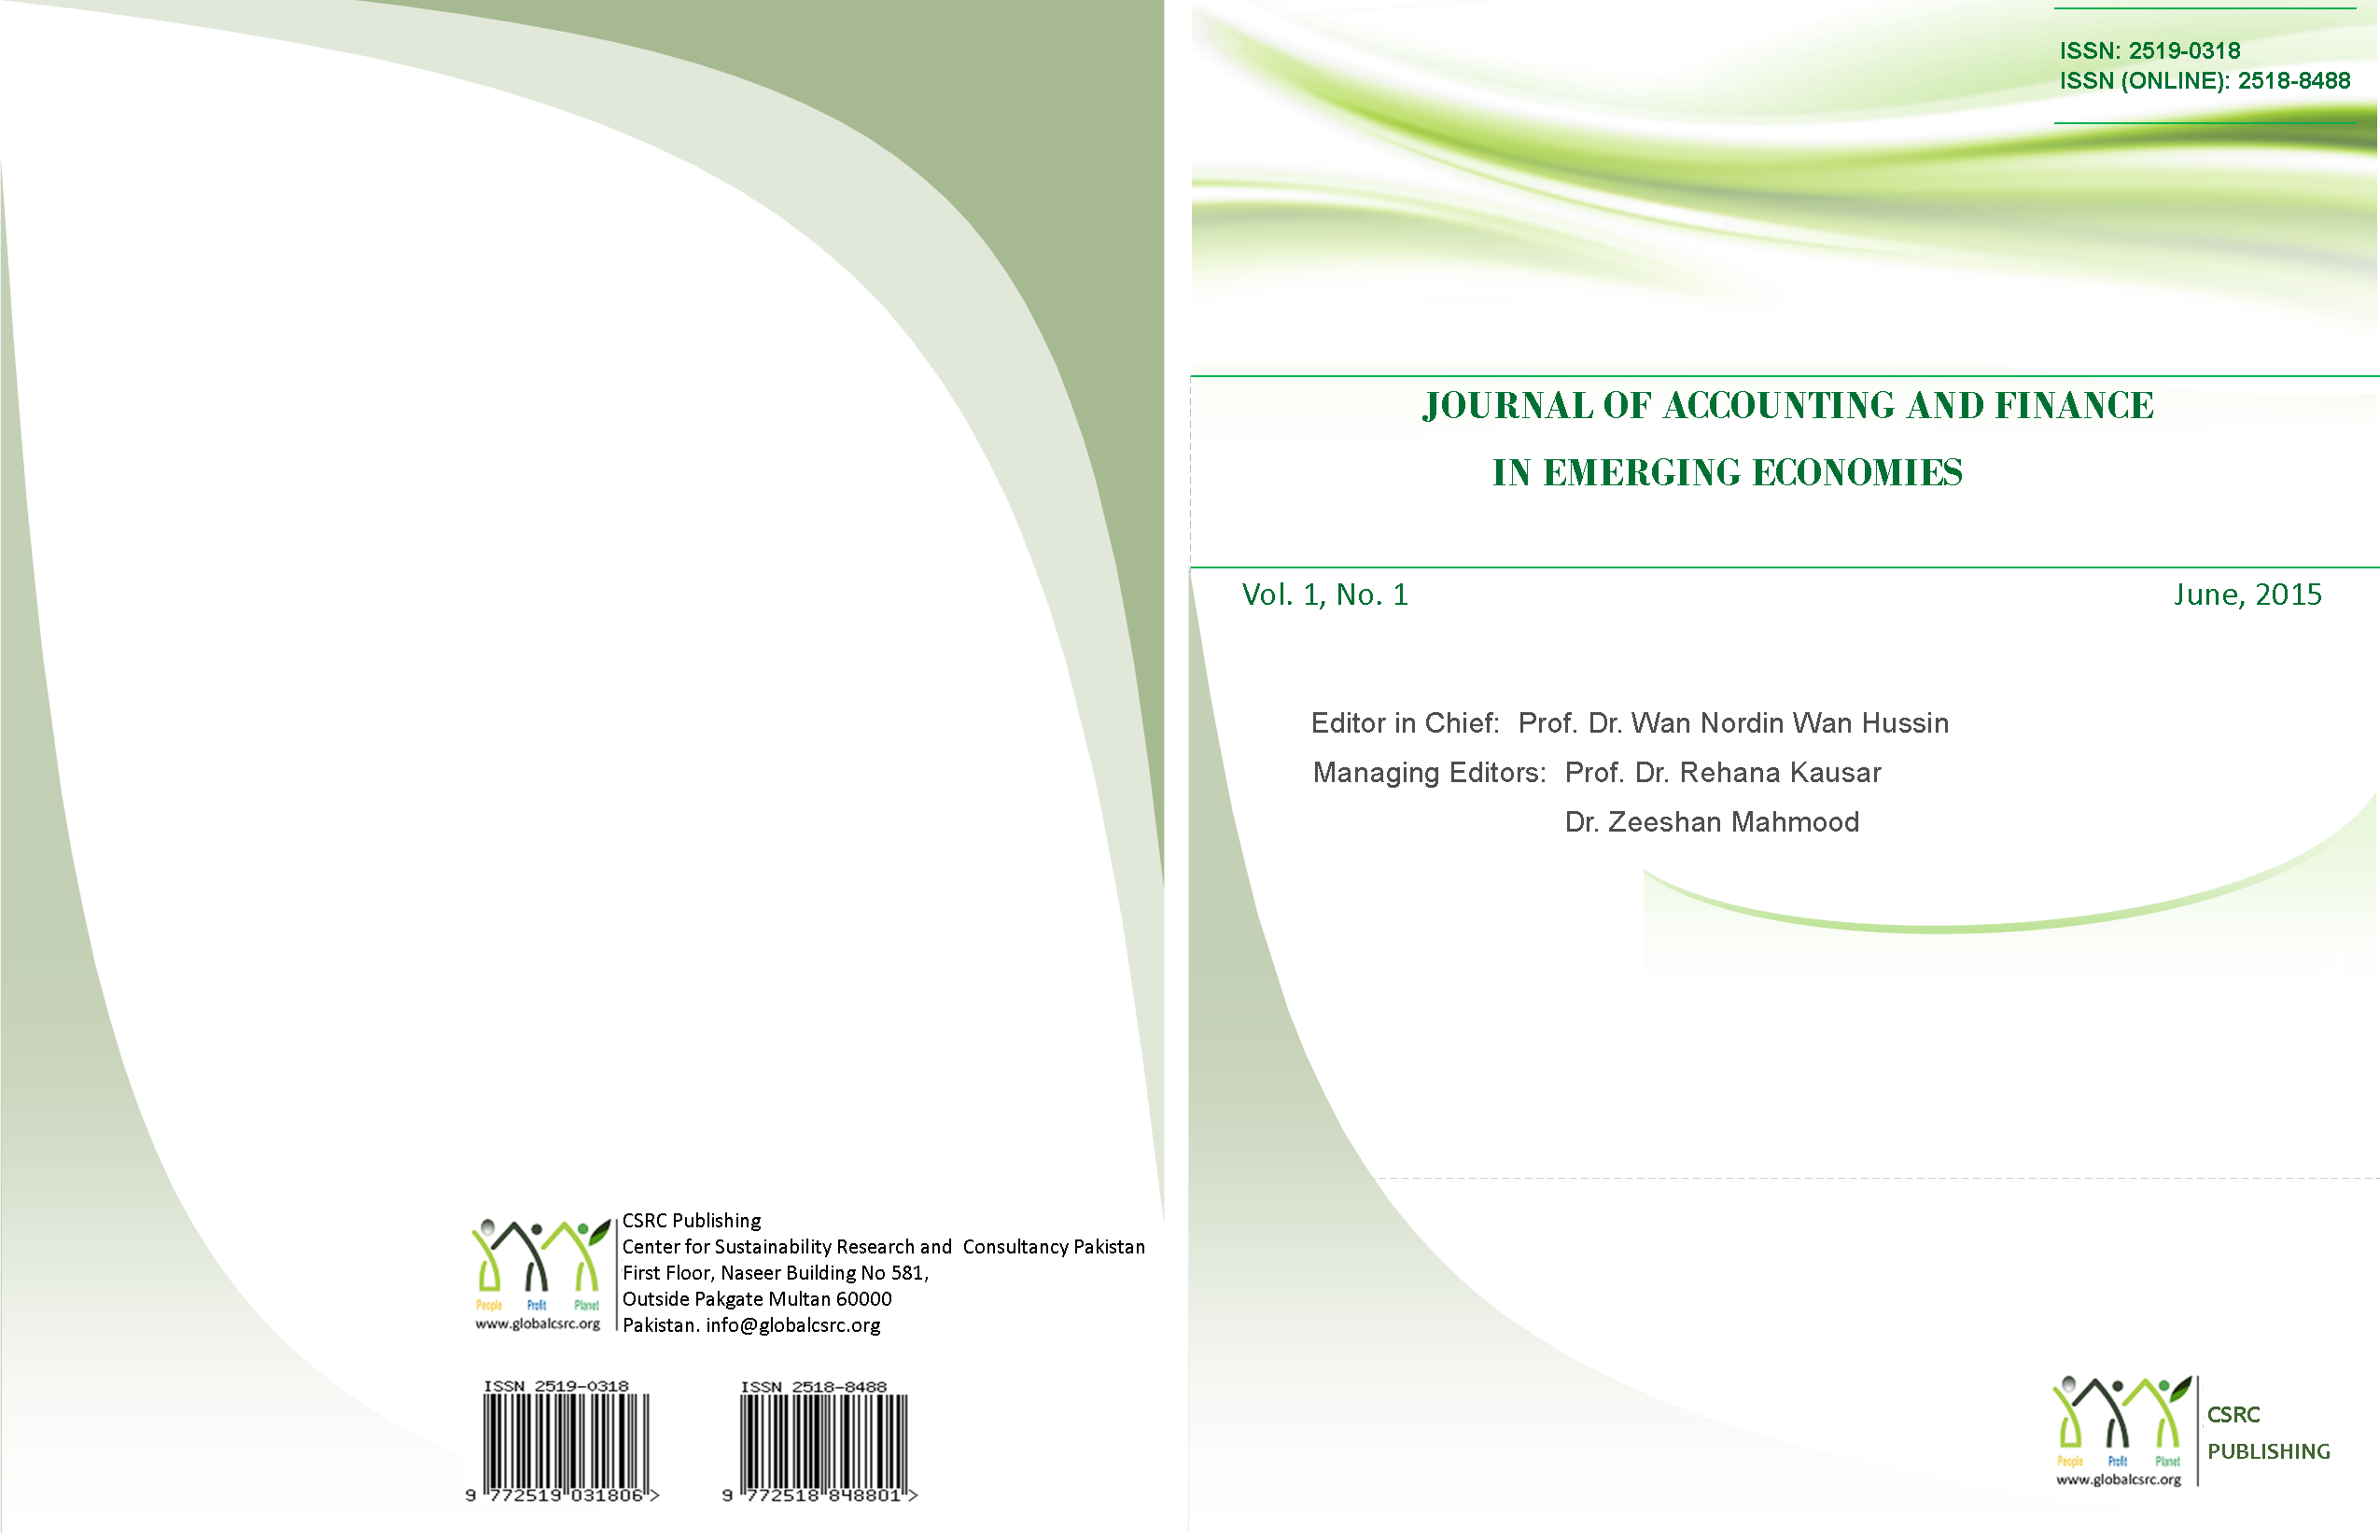 Journal of Accounting and Finance in Emerging Economies